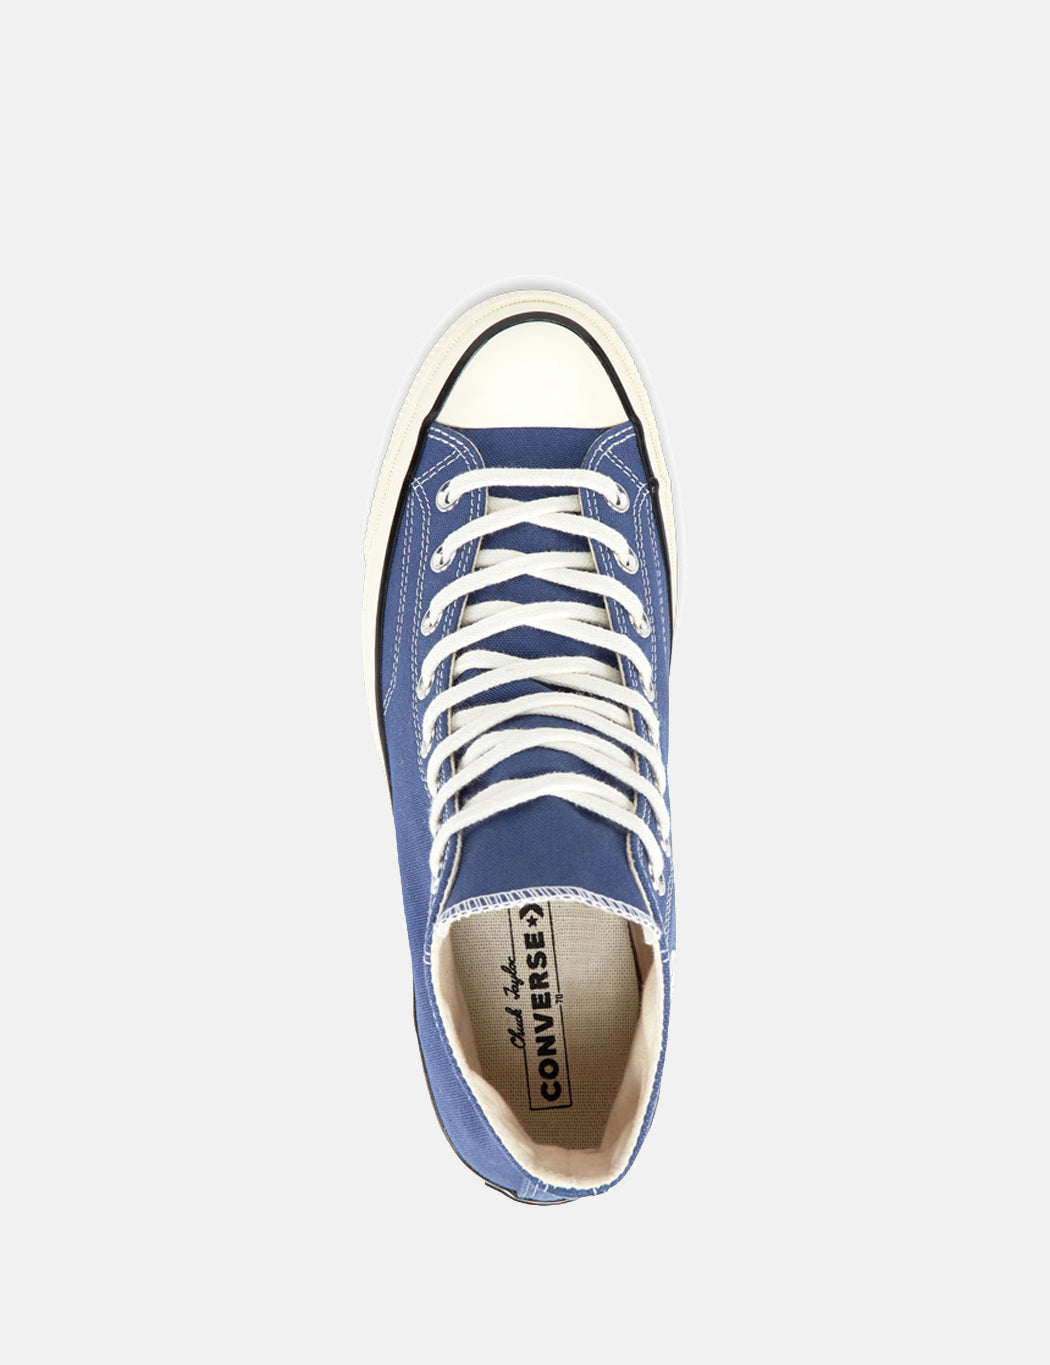 Converse 70's Chuck Taylor Hi 162055C (Canvas) - True Navy Blue